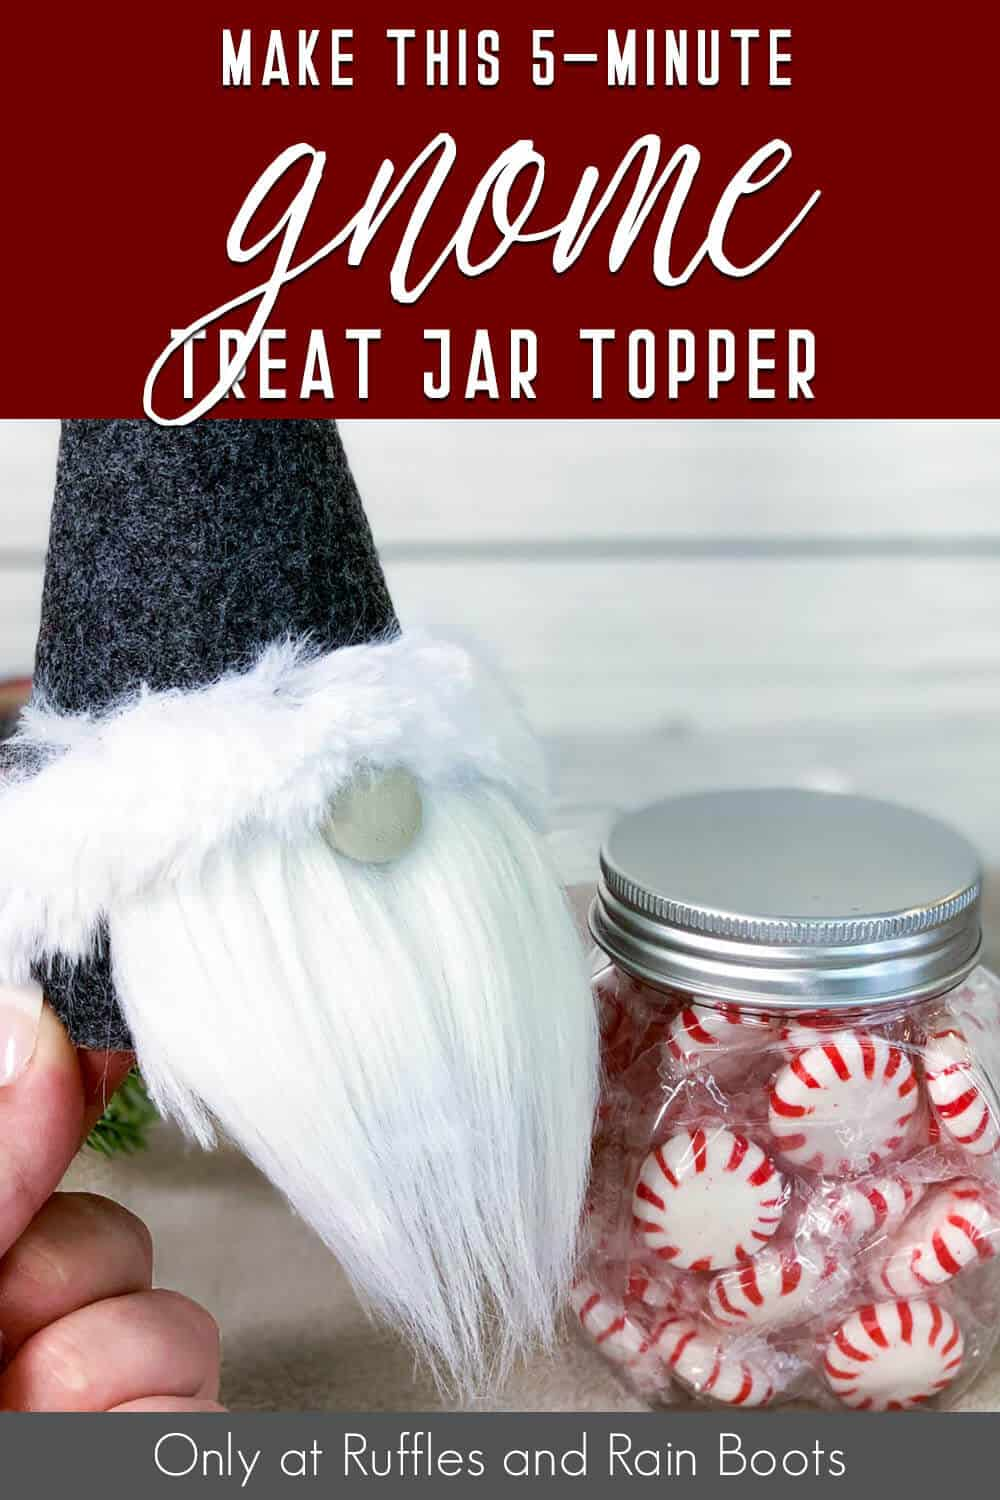 easy gnome candy jar lid craft with text which reads make this 5-minute gnome treat jar topper